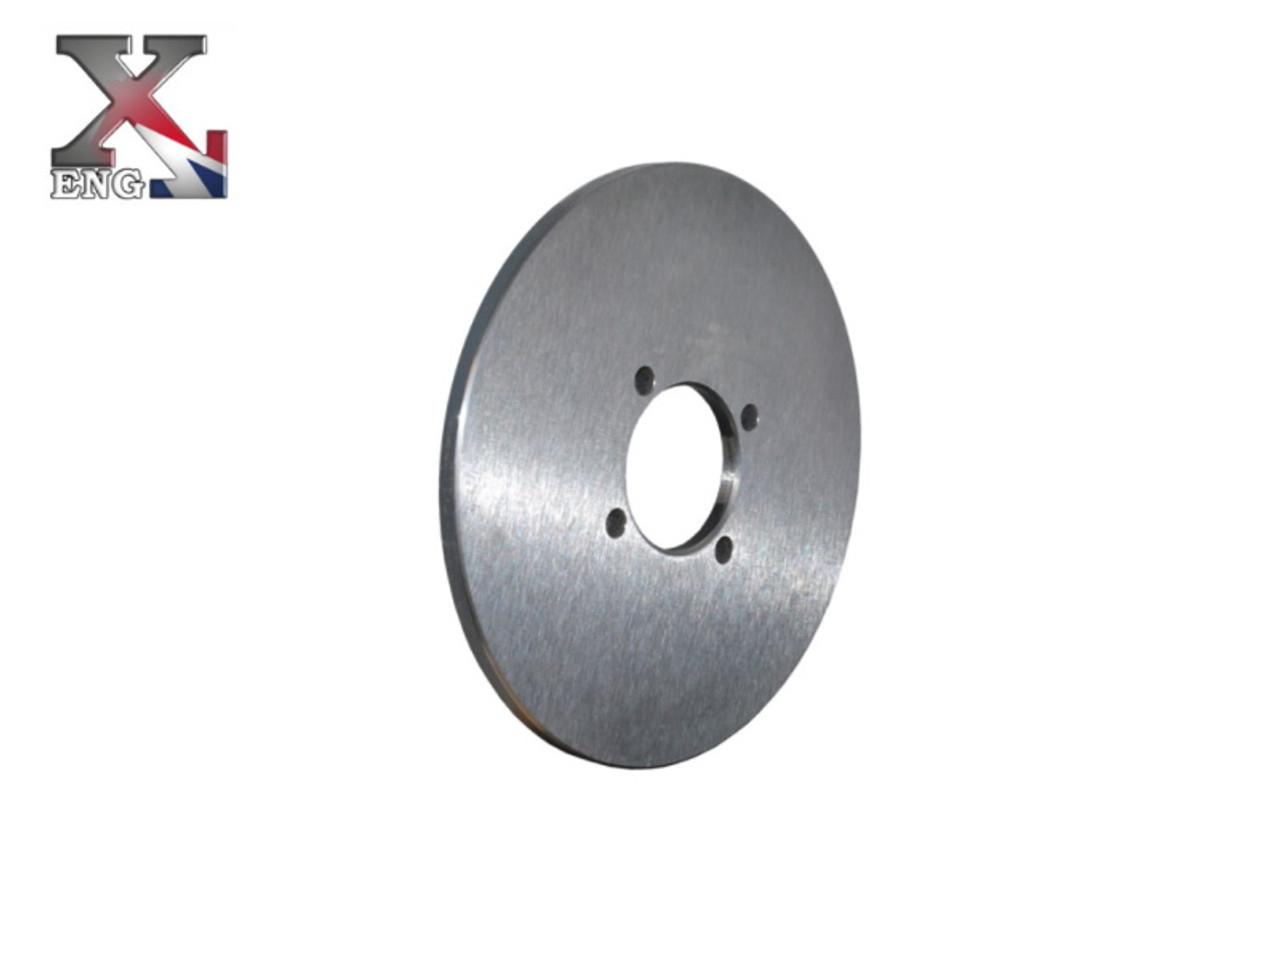 X ENG Defender And Discovery Handbrake Replacement Disc